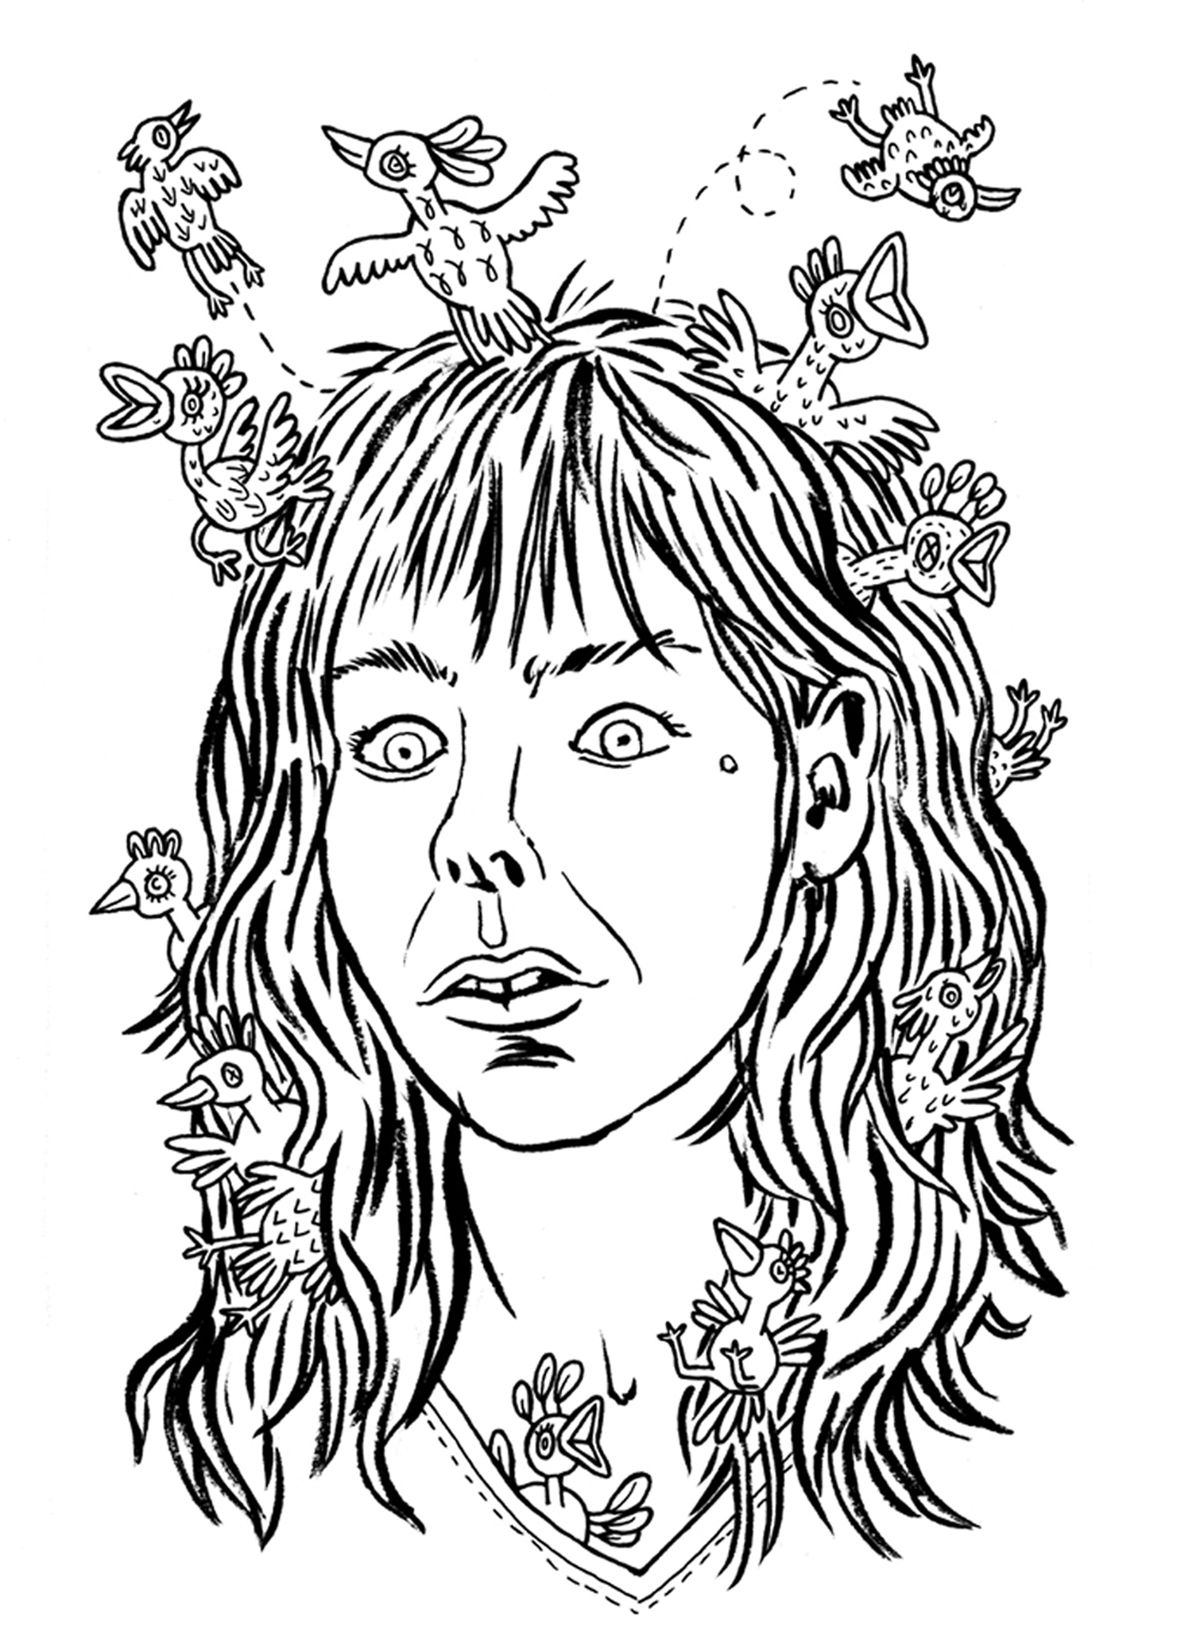 A black and white line drawing self-portrait of Lisa Hanawalt with small birds all over and throughout her shoulder-length hair.